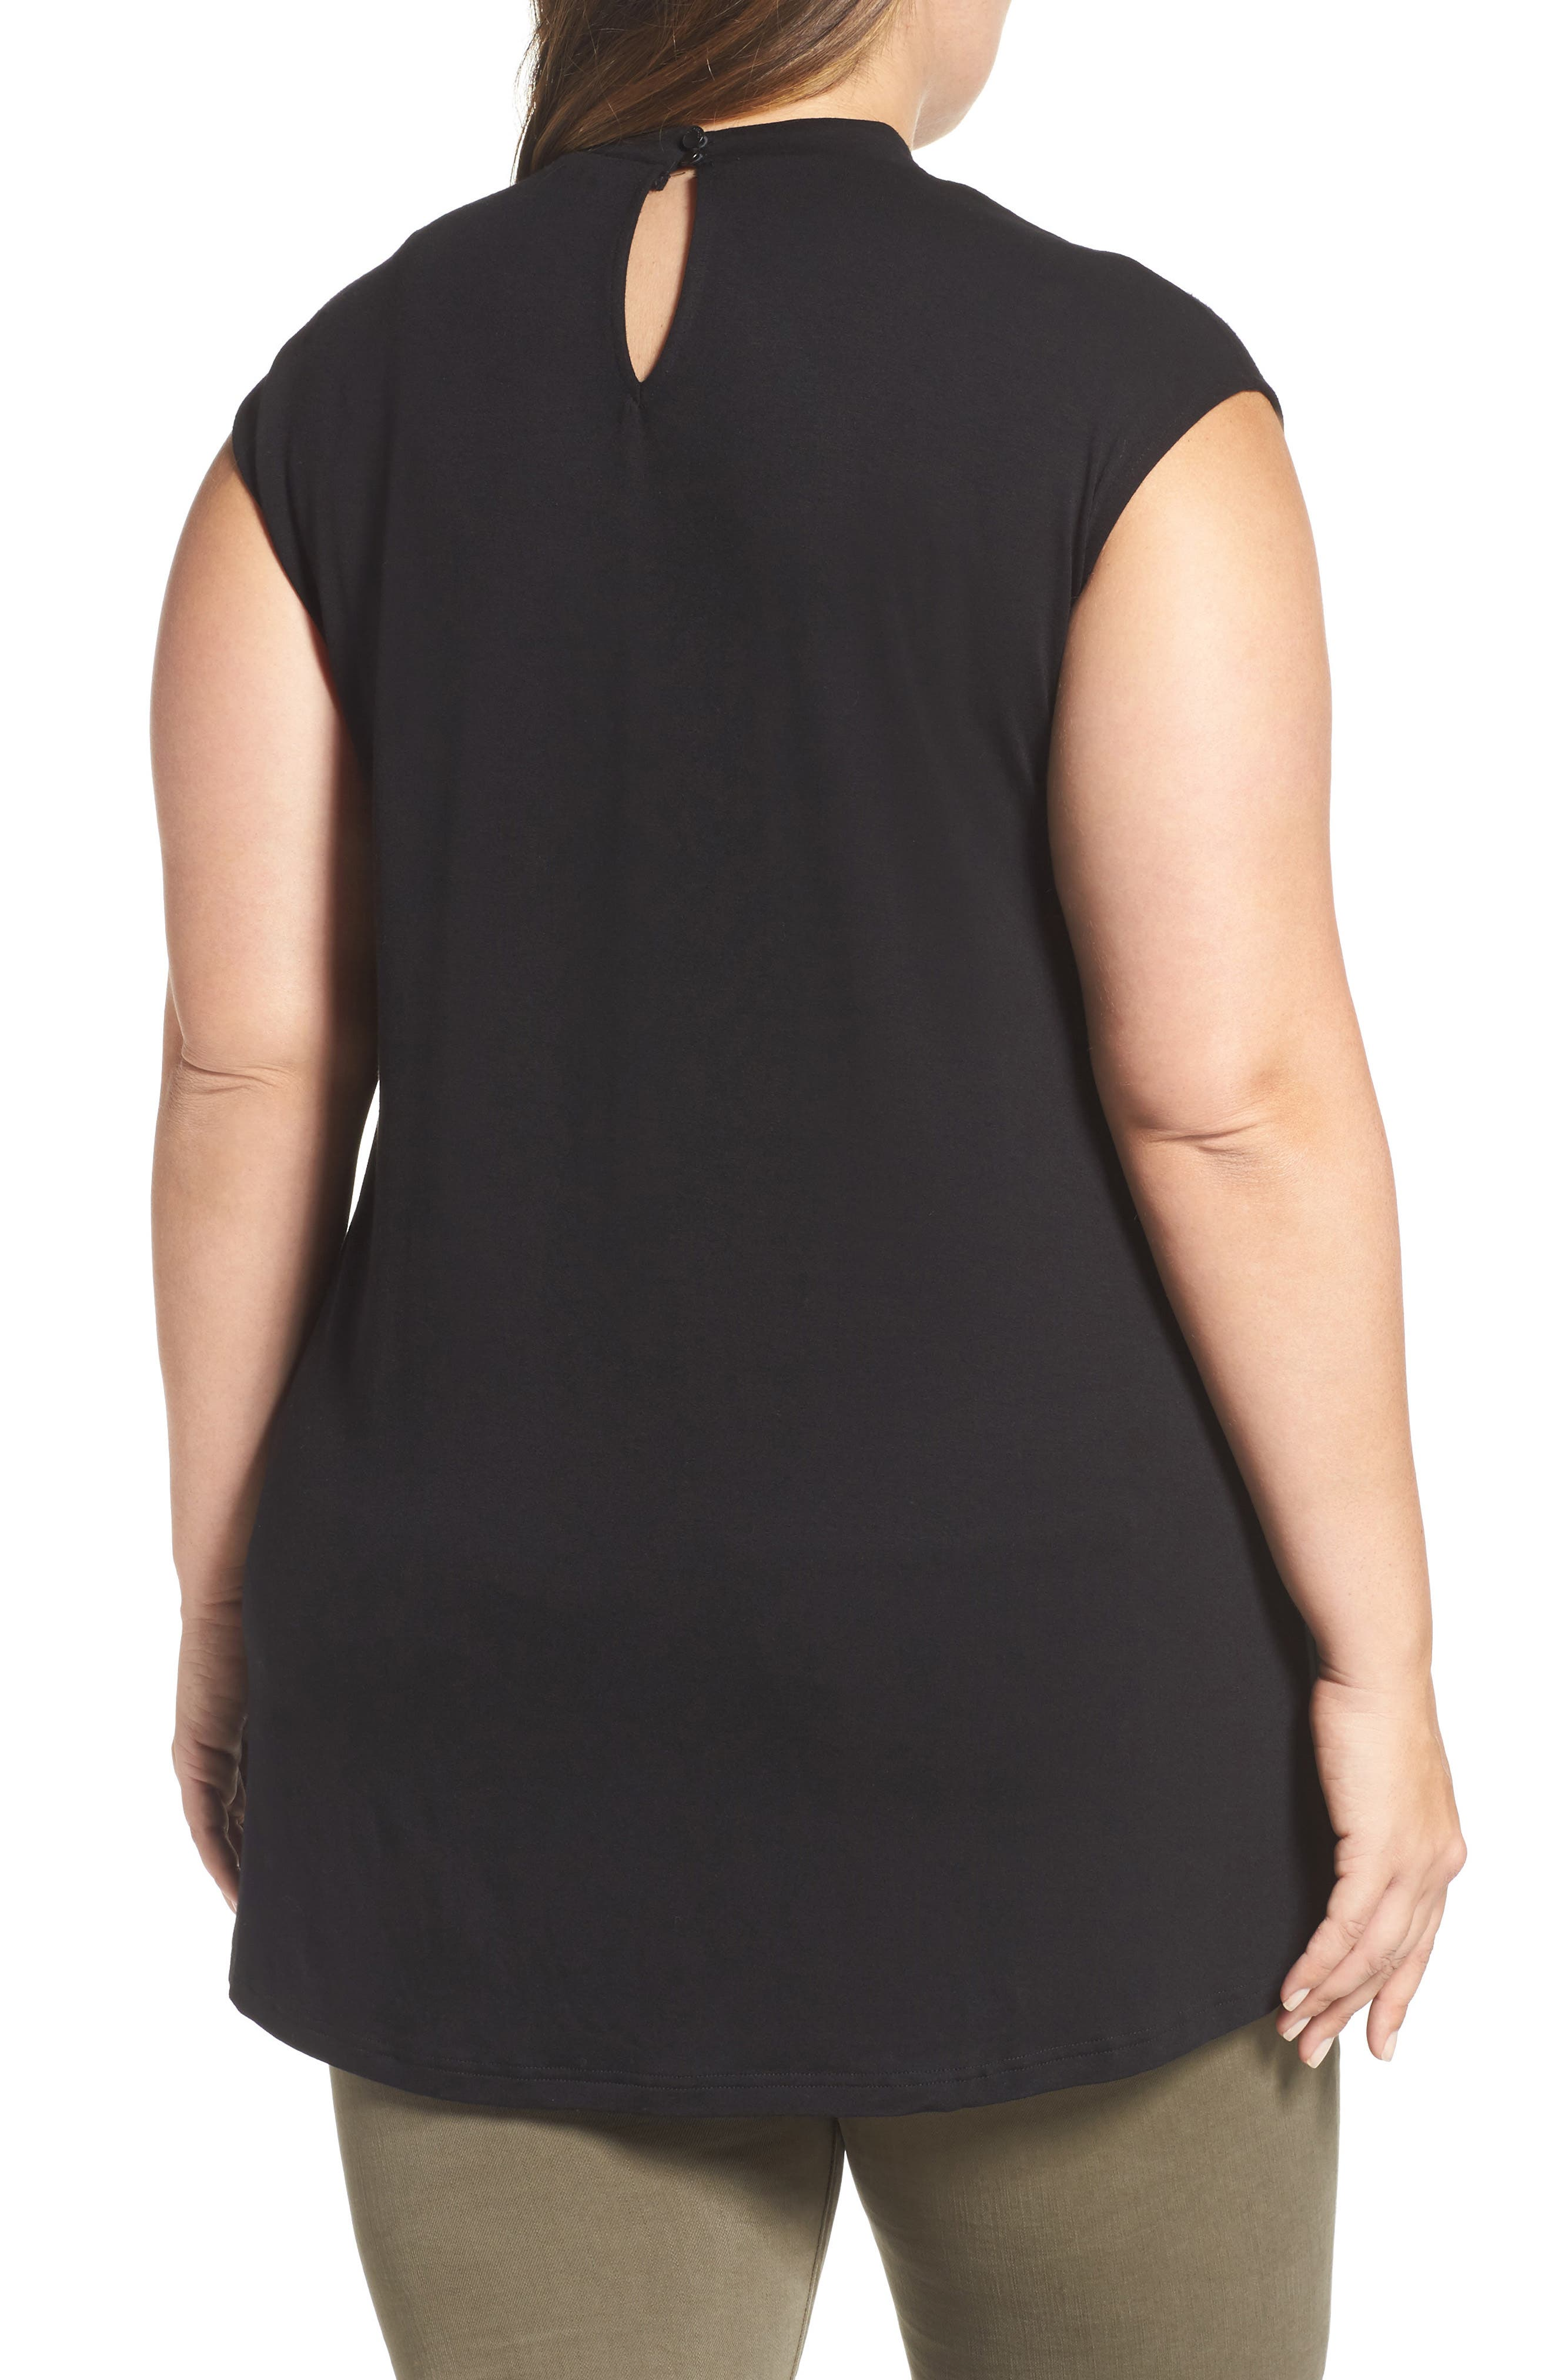 Alternate Image 2  - Vince Camuto Choker Neck High/Low Top (Plus Size)